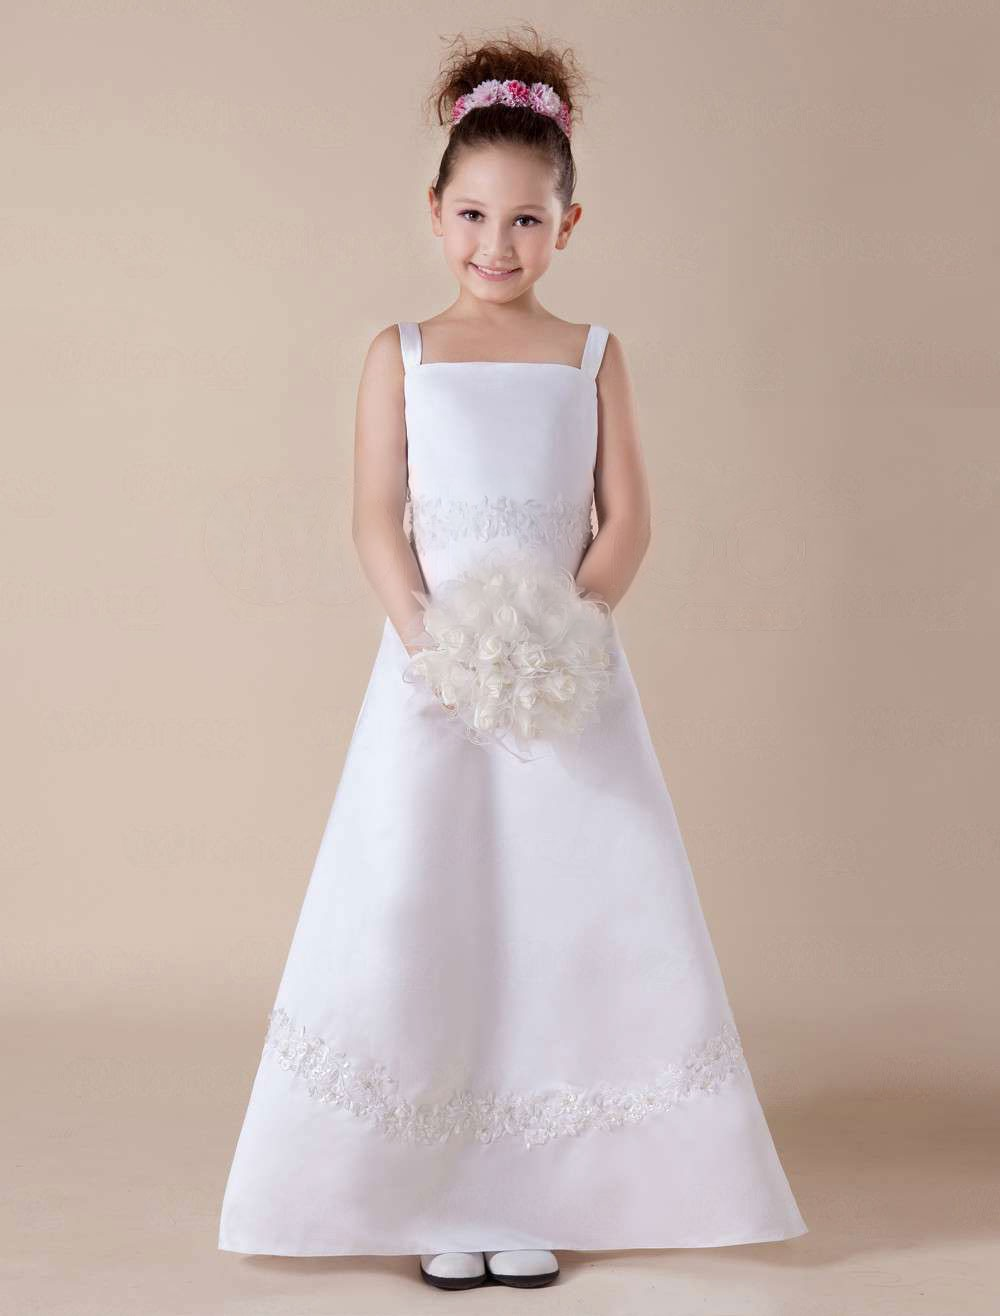 Satin Flower Girl Dresses Flower Girl Dresses